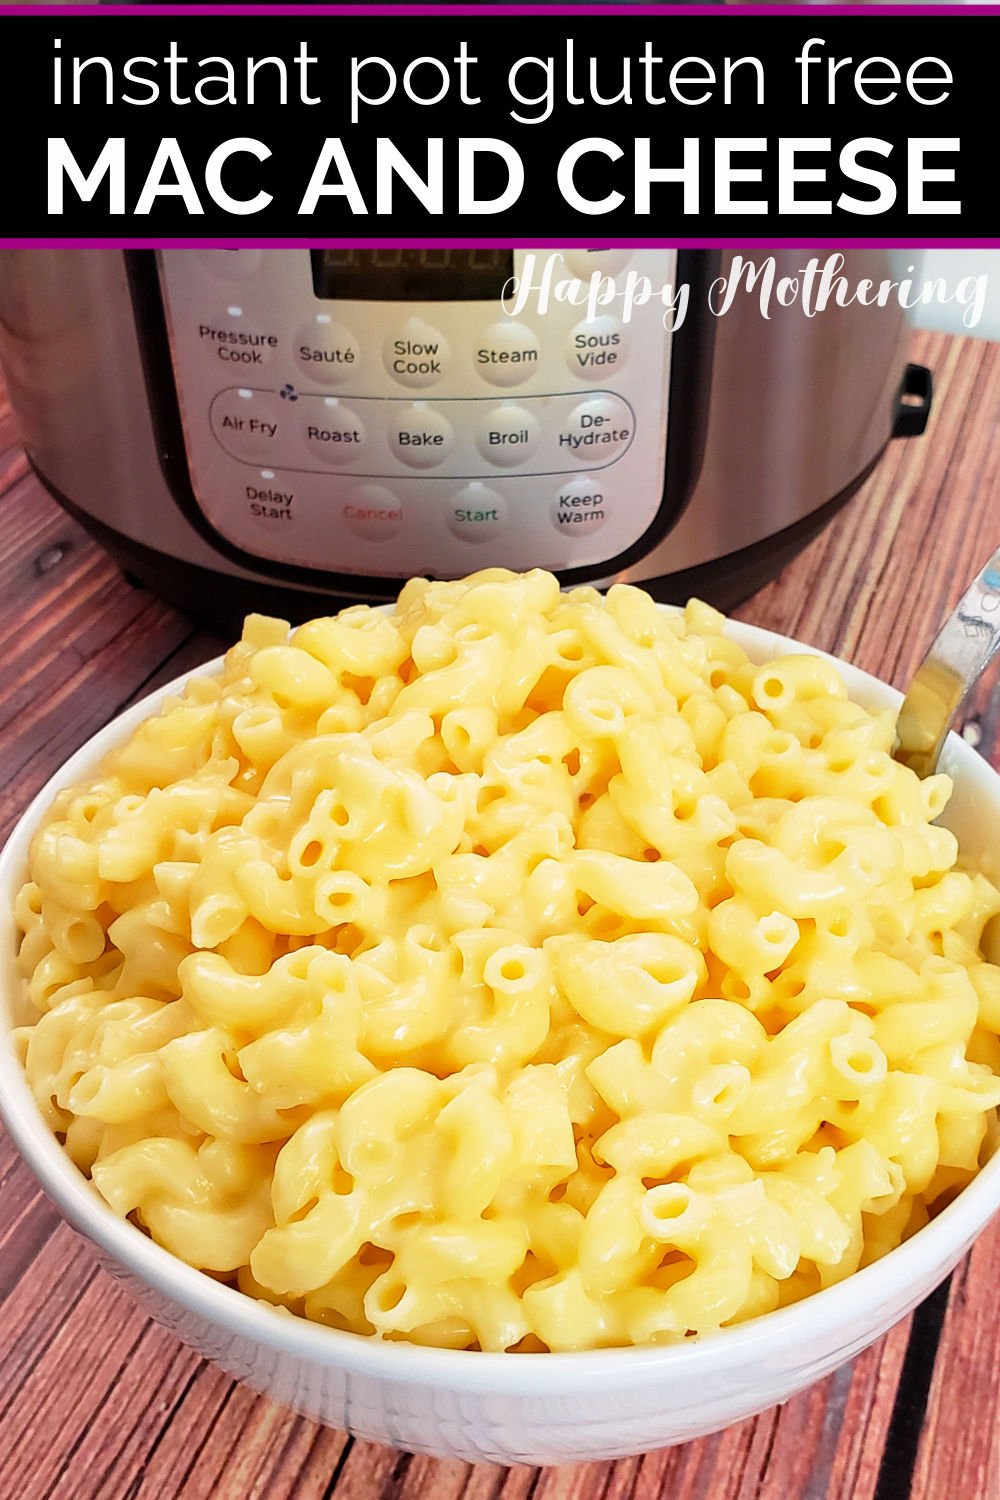 Bowl of gluten free mac and cheese next to Instant Pot.